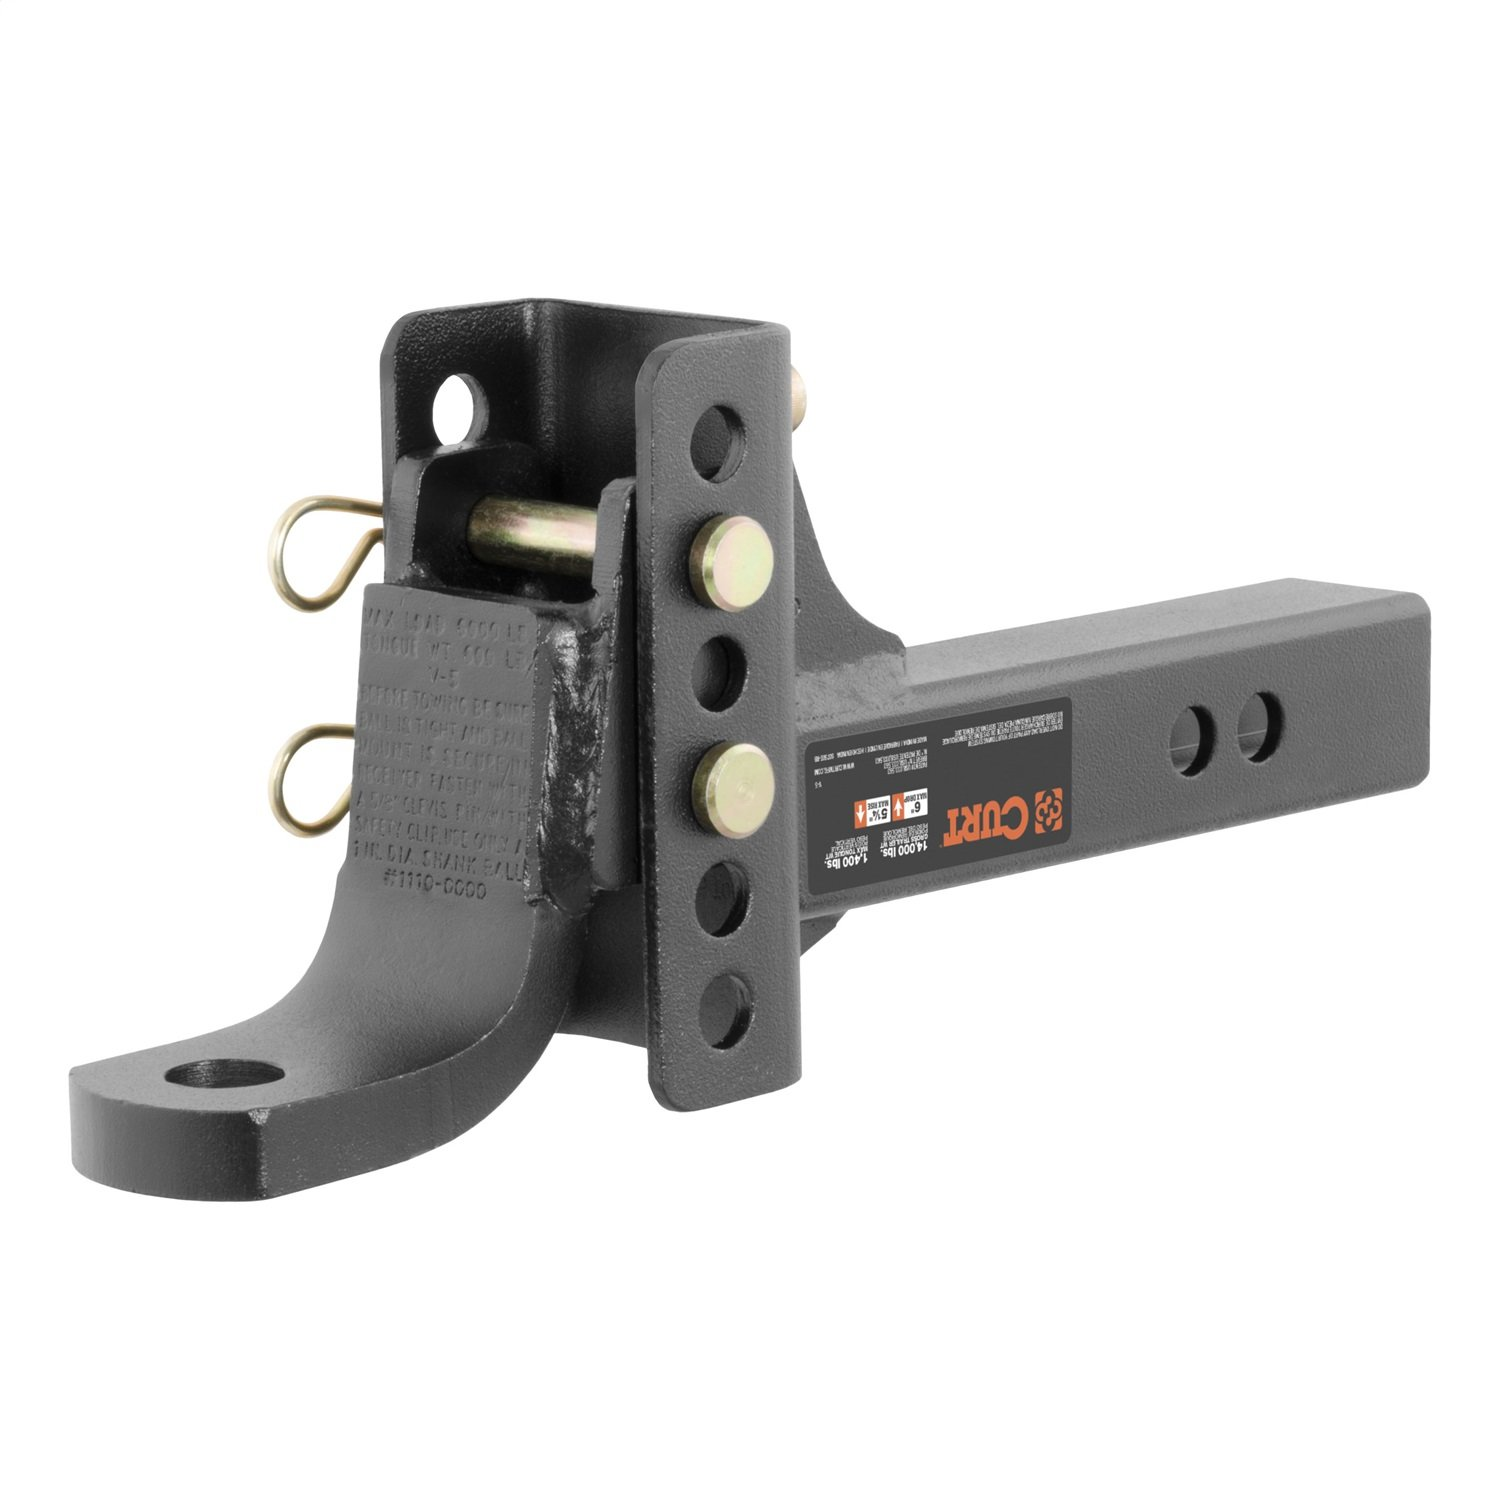 CURT Manufacturing 45901 Channel-Style Adjustable Ball Mount Tongue